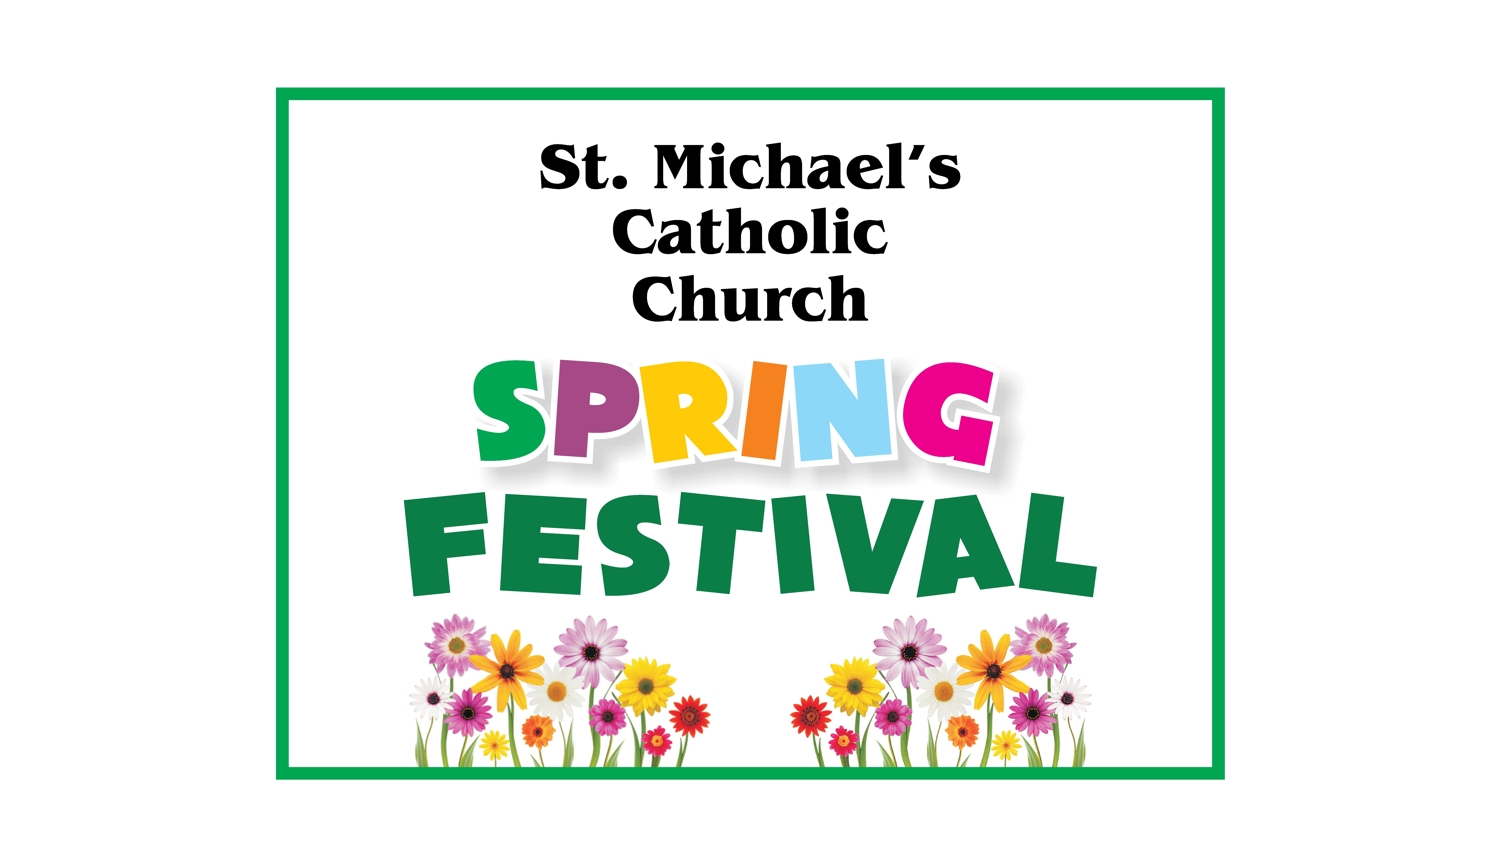 St. 20michael s 20church 20  20spring 20festival 20  20all 20crvs